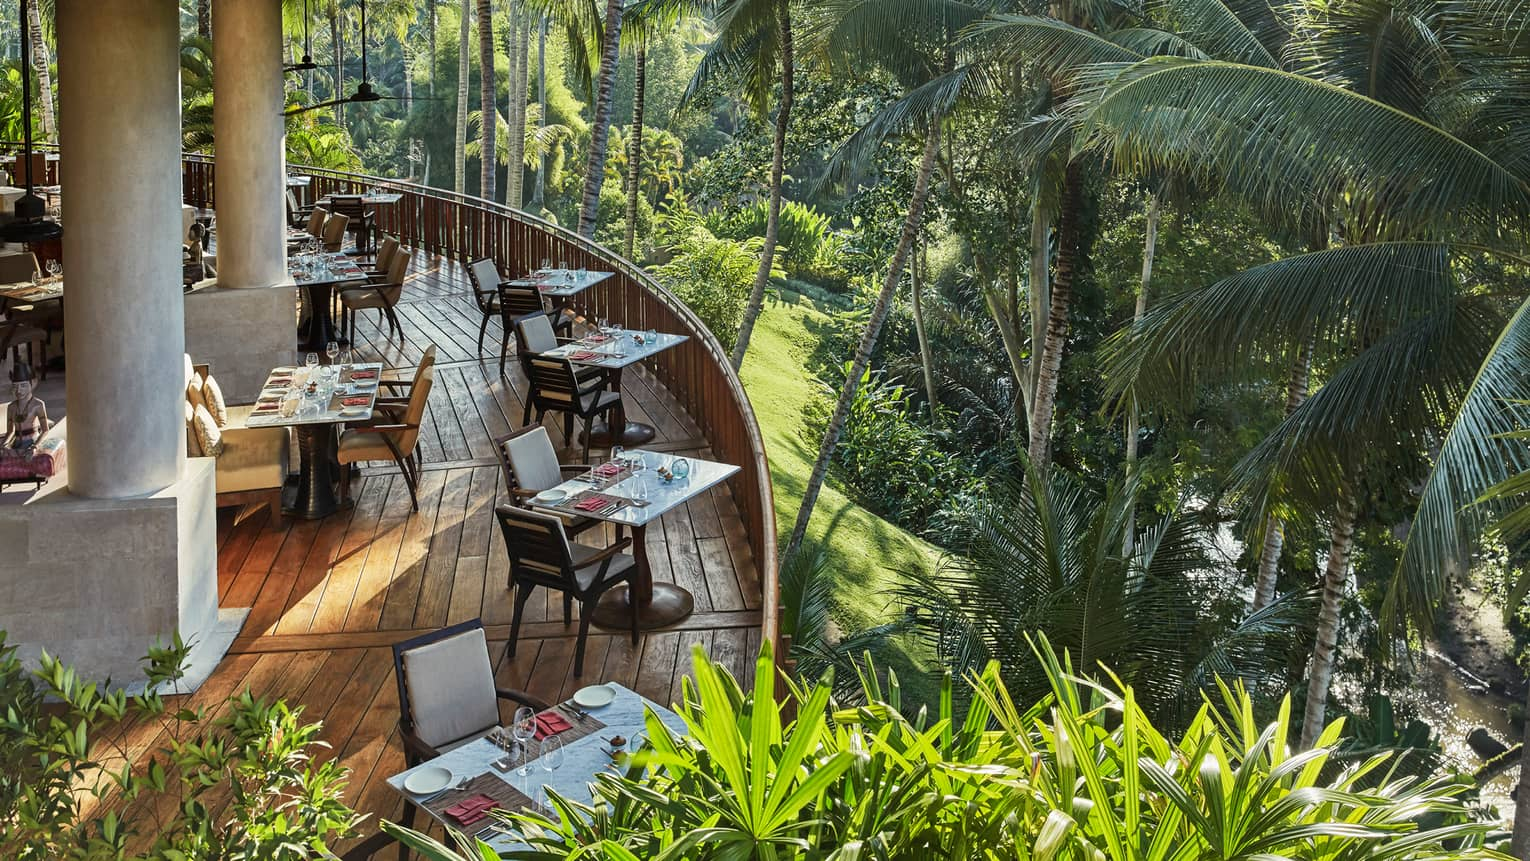 Looking down at curved wood patio of Ayung Terrace outdoor dining room, tables and chairs overlooking palm trees, forest